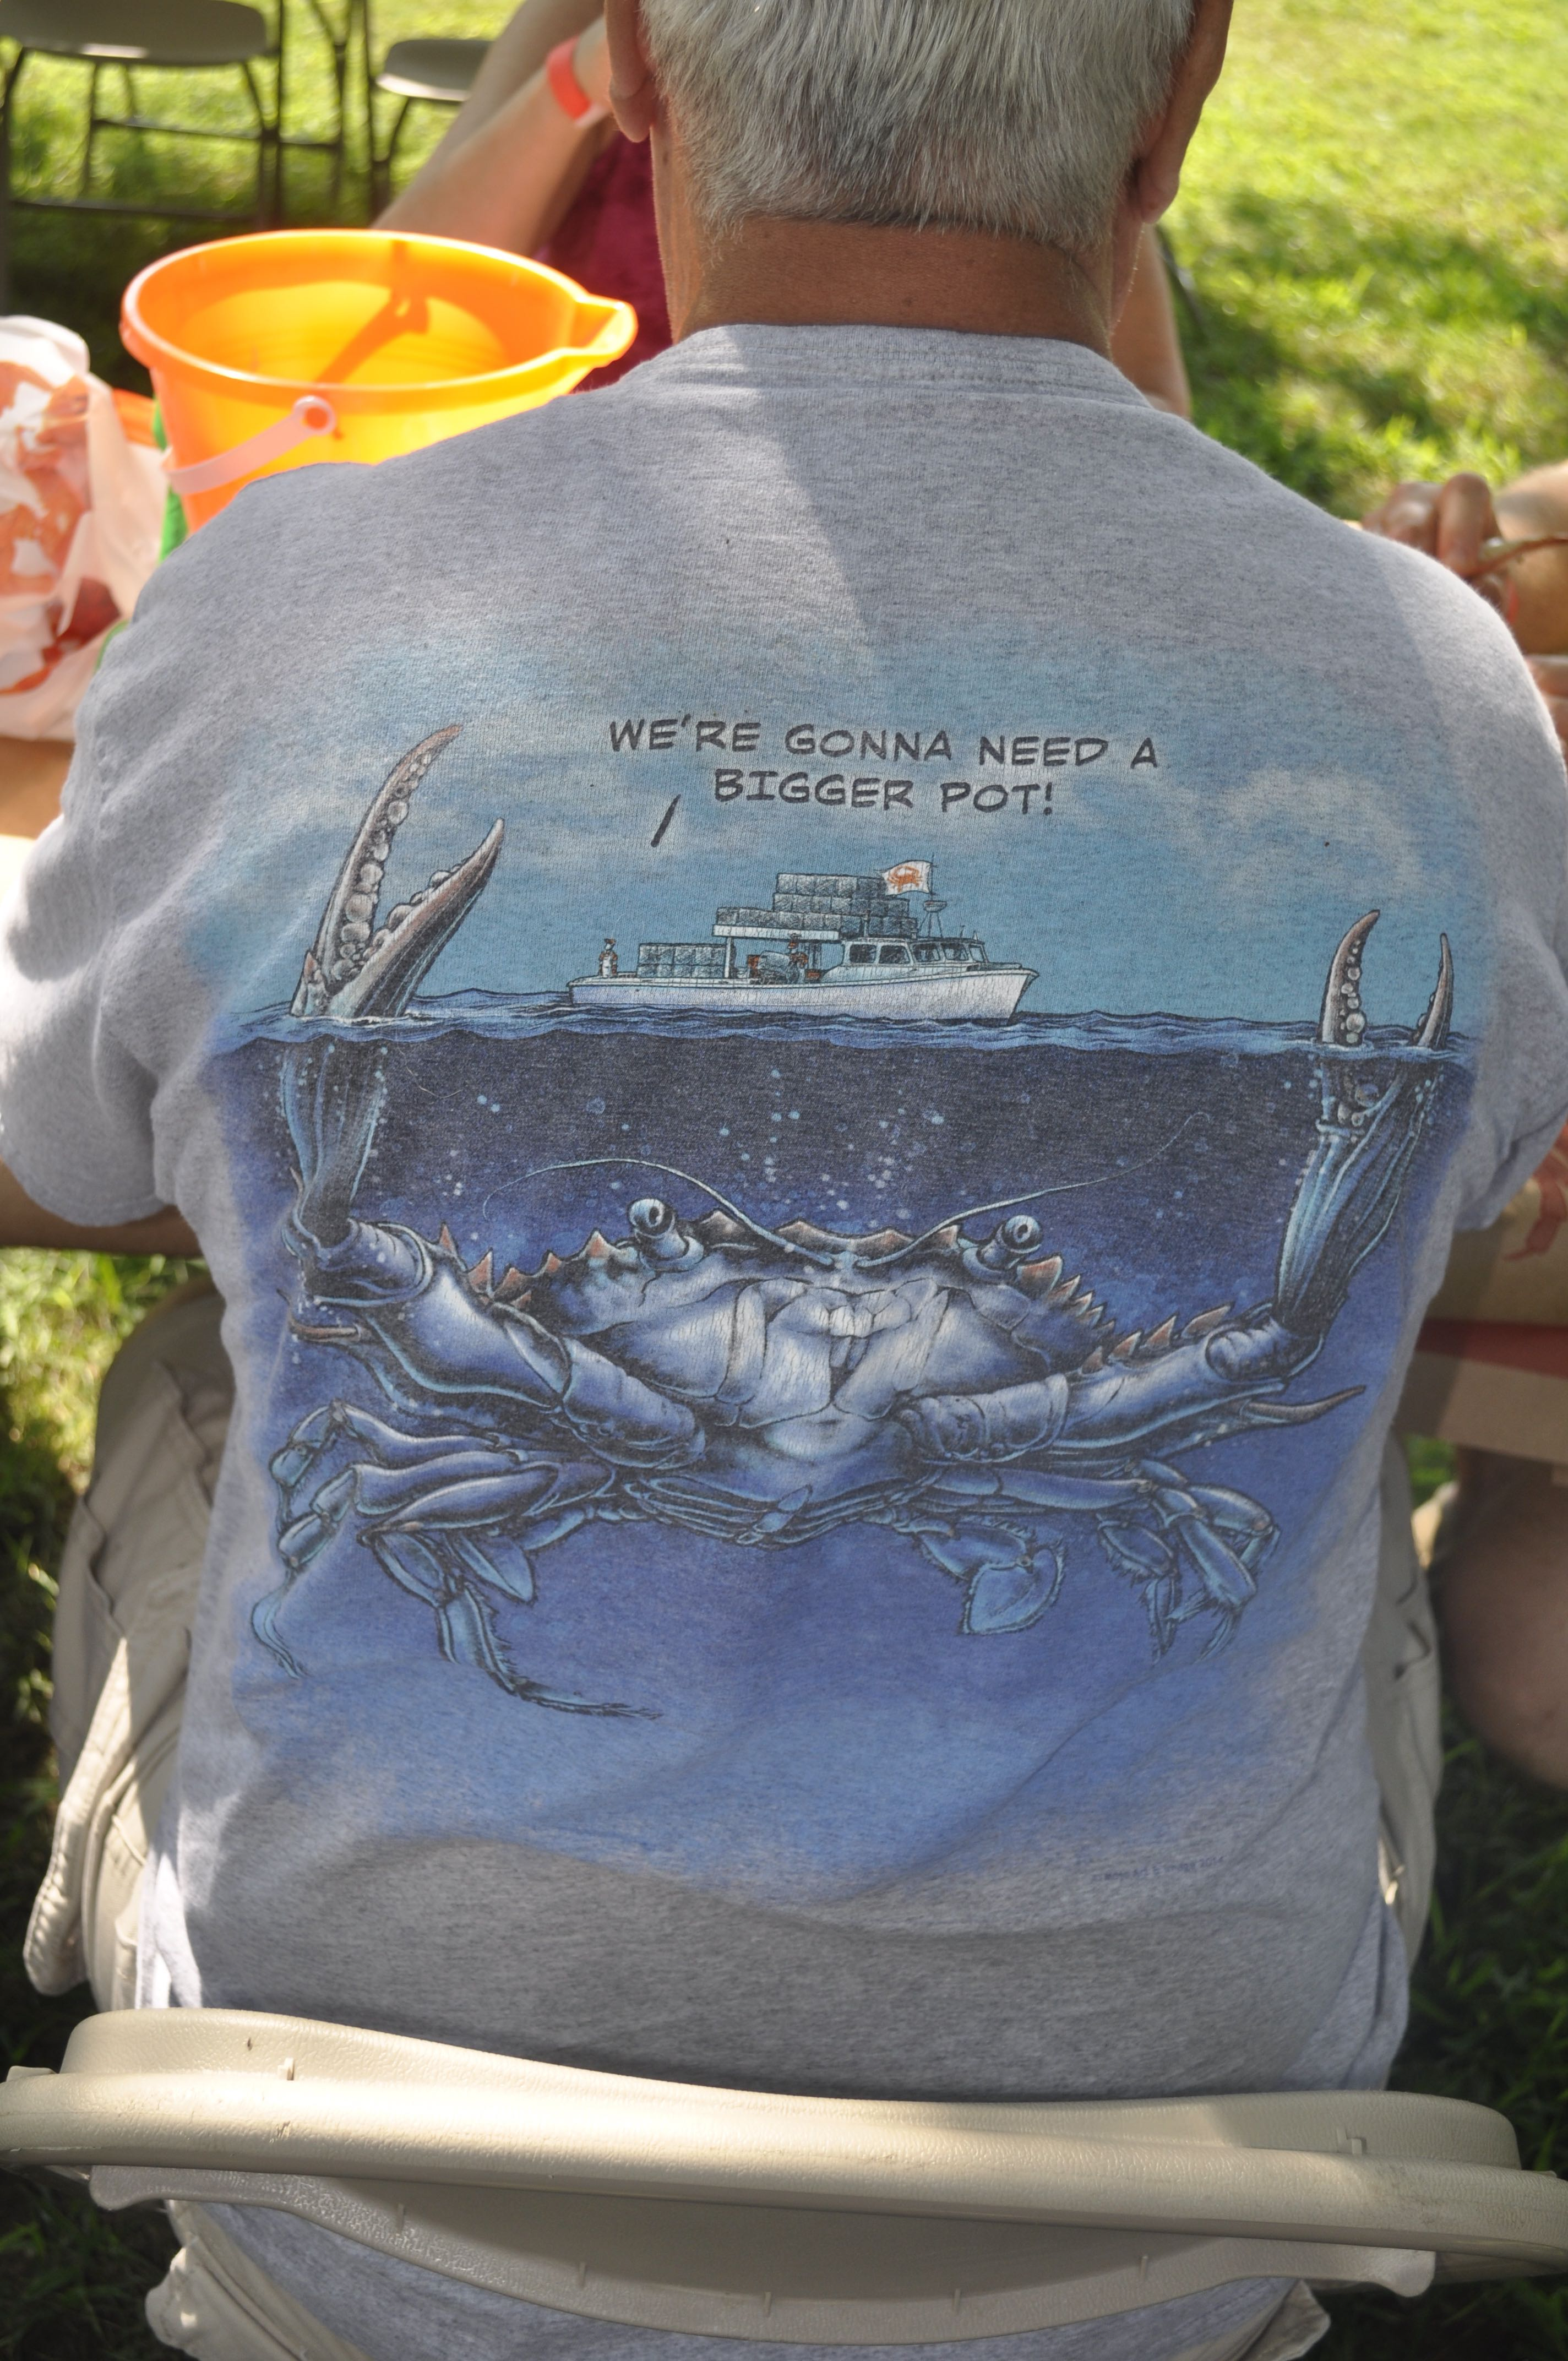 Crazy for Crab? Win Crab Fest Tickets! - Help Hope Live